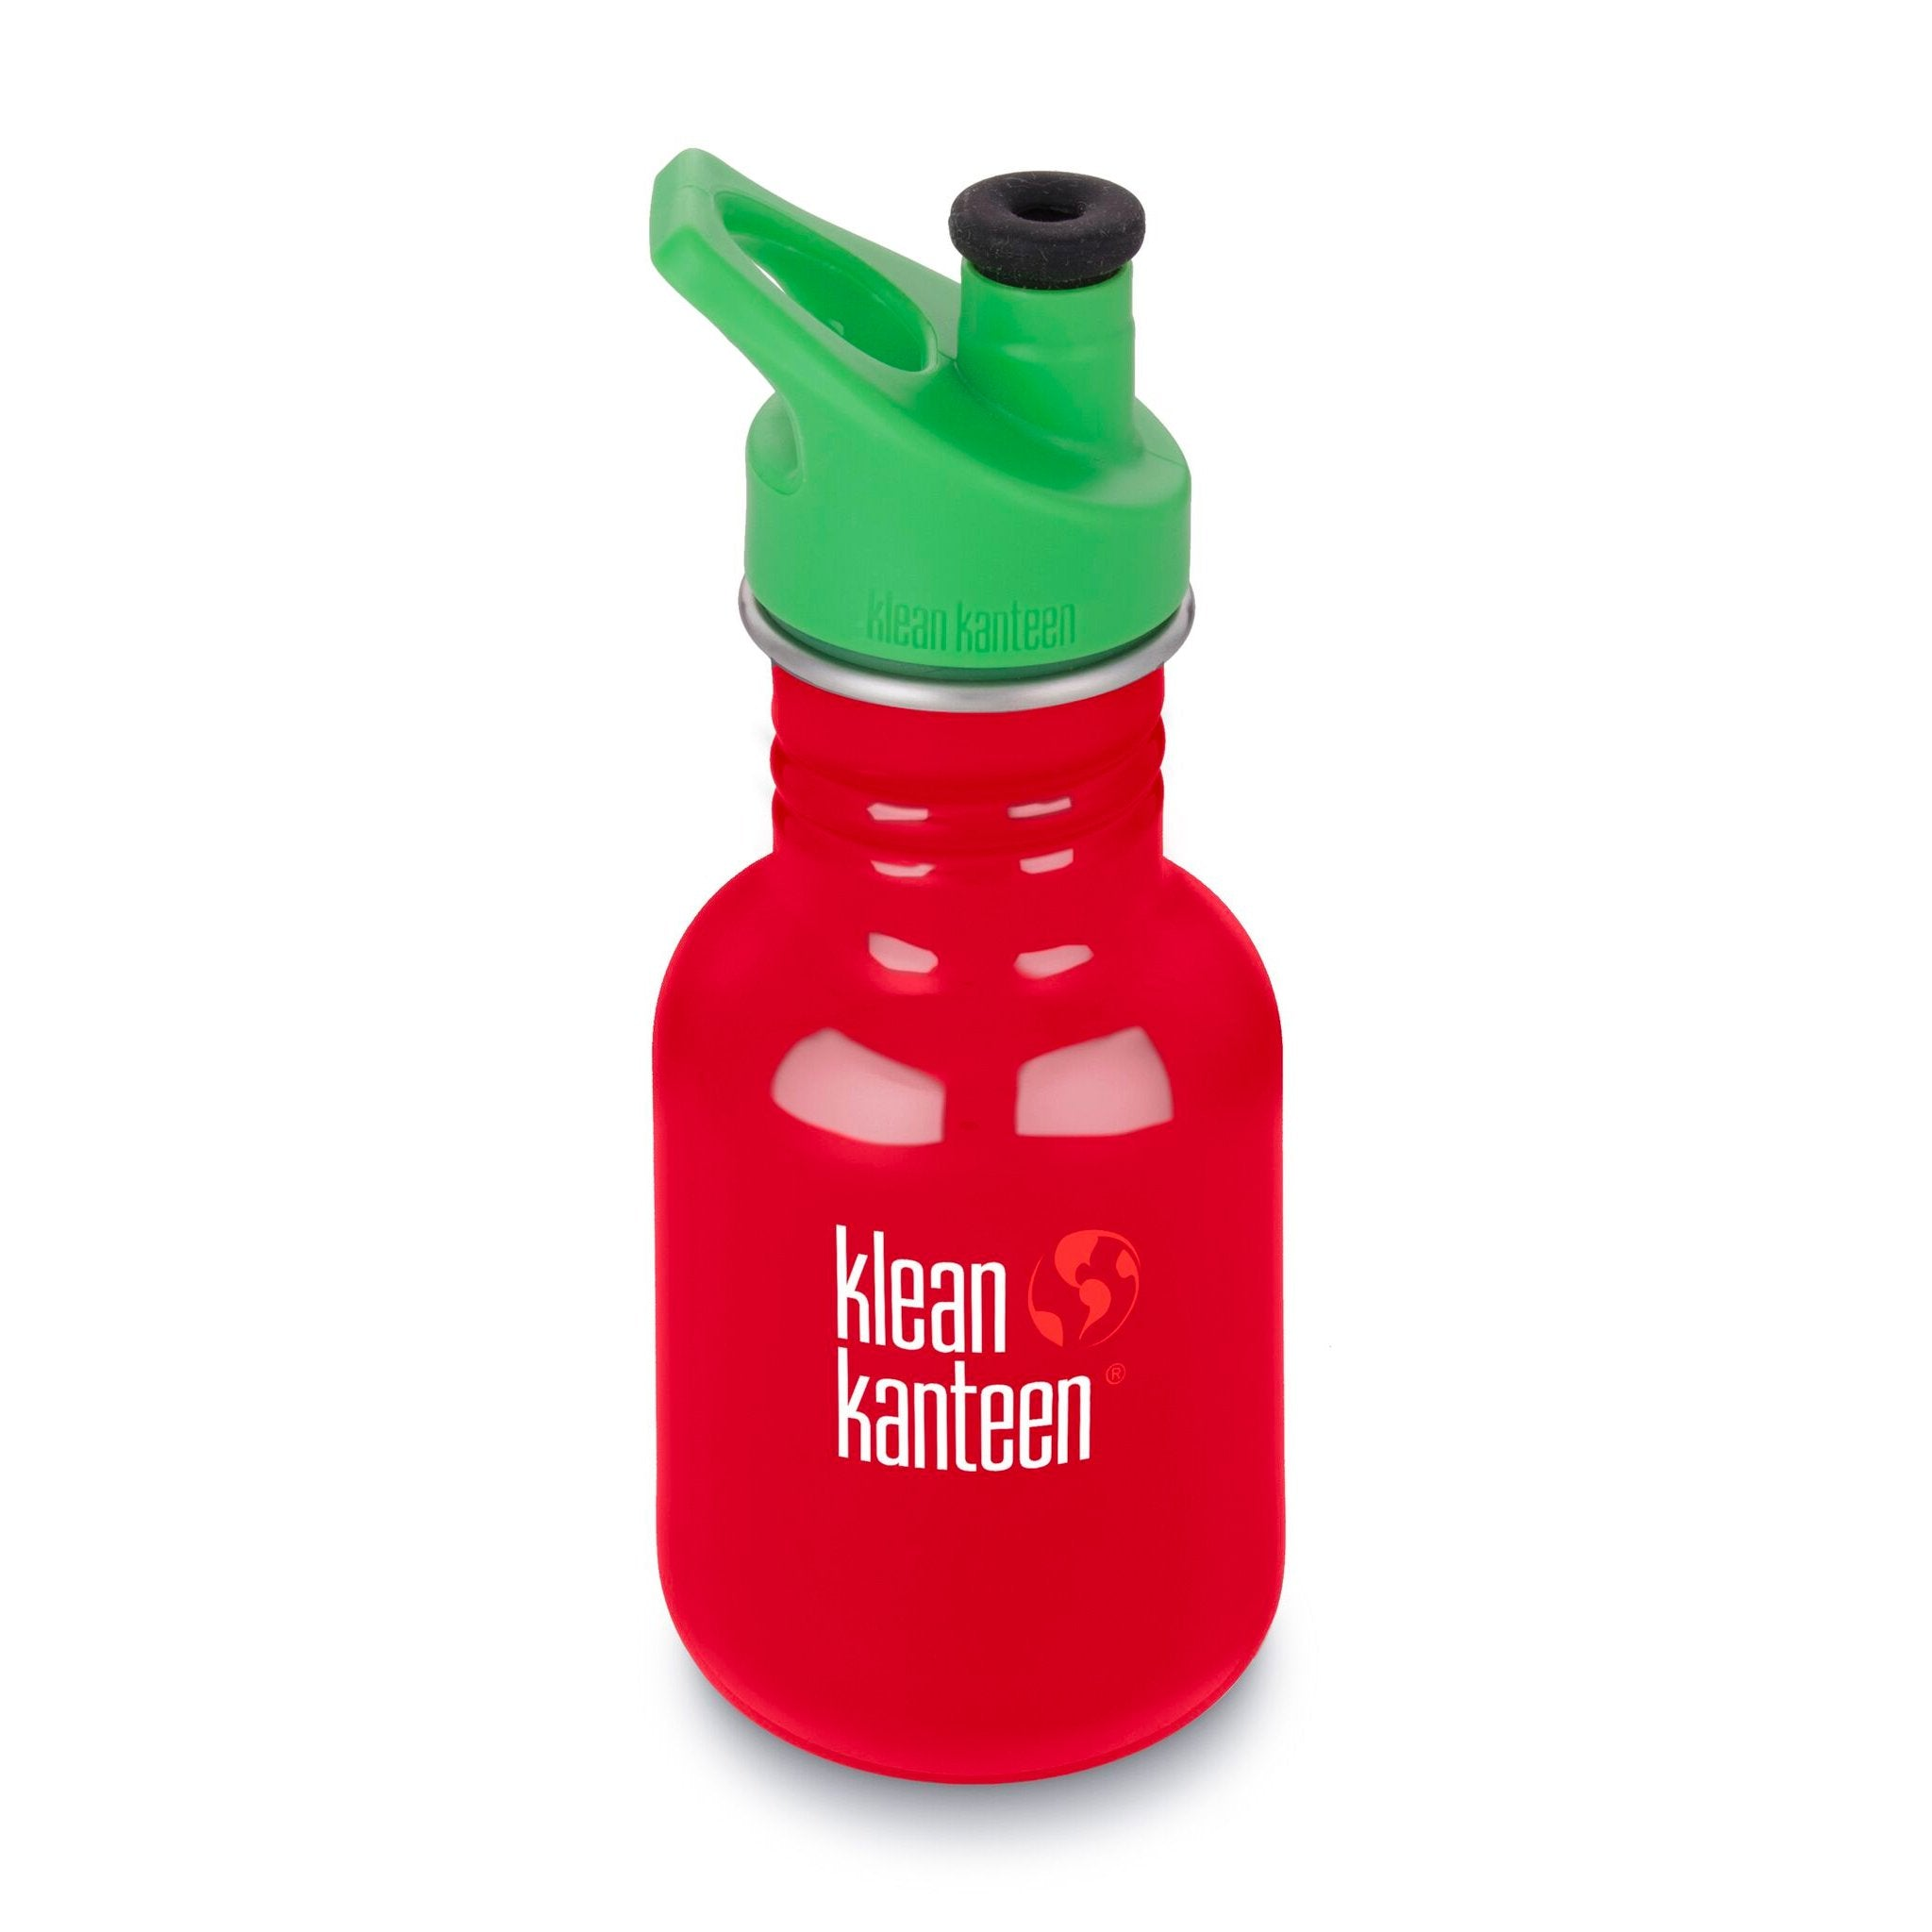 Klean Kanteen Kid Kanteen 355ml 12oz Stainless Steel Bottle Klean Kanteen Sippy Cups Sport / Mineral Red at Little Earth Nest Eco Shop